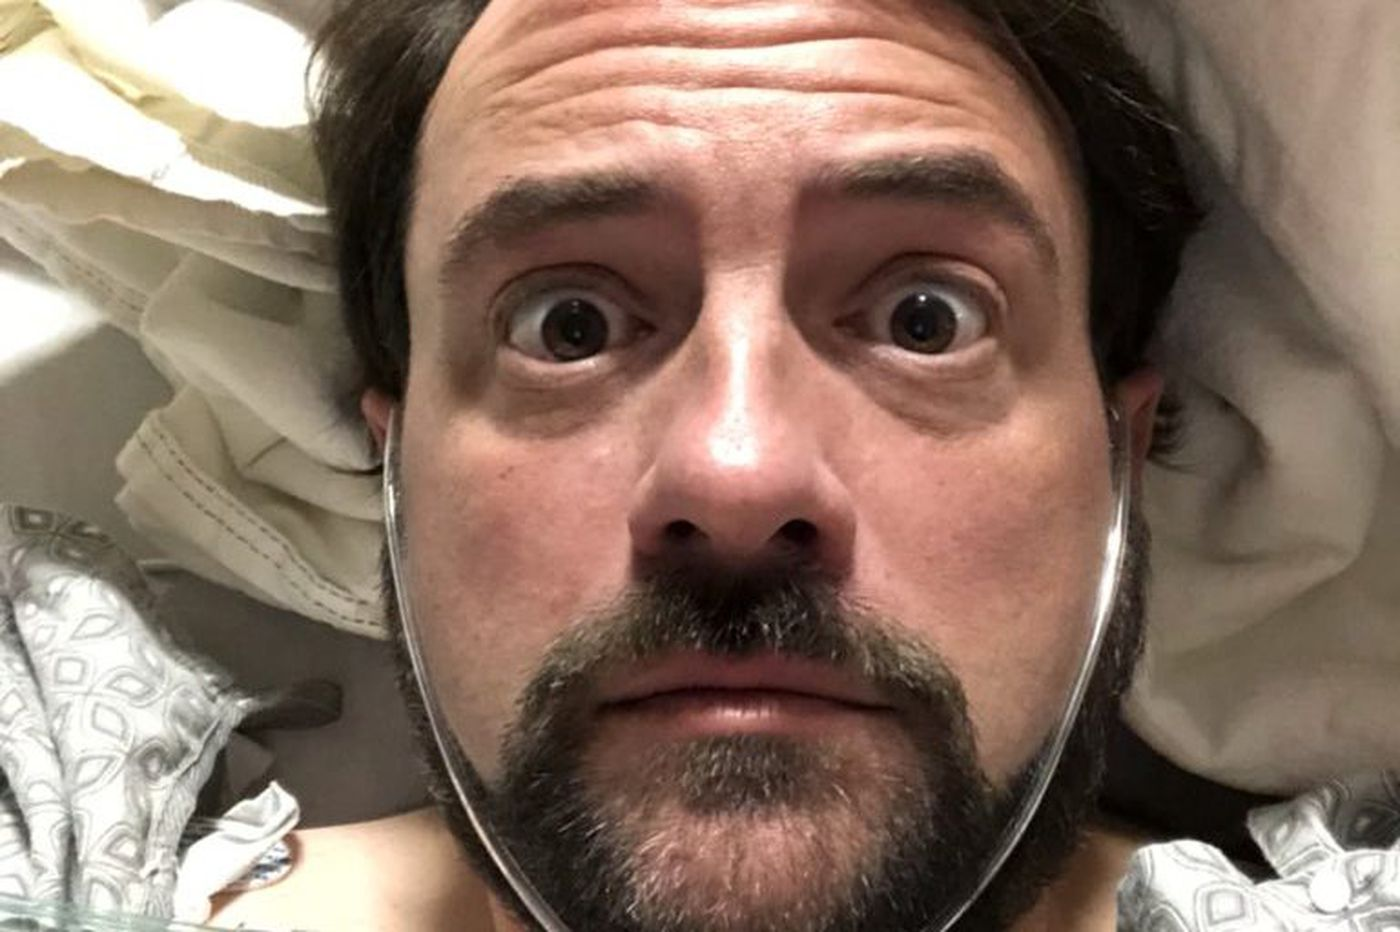 Kevin Smith reaches weight loss goal following massive heart attack